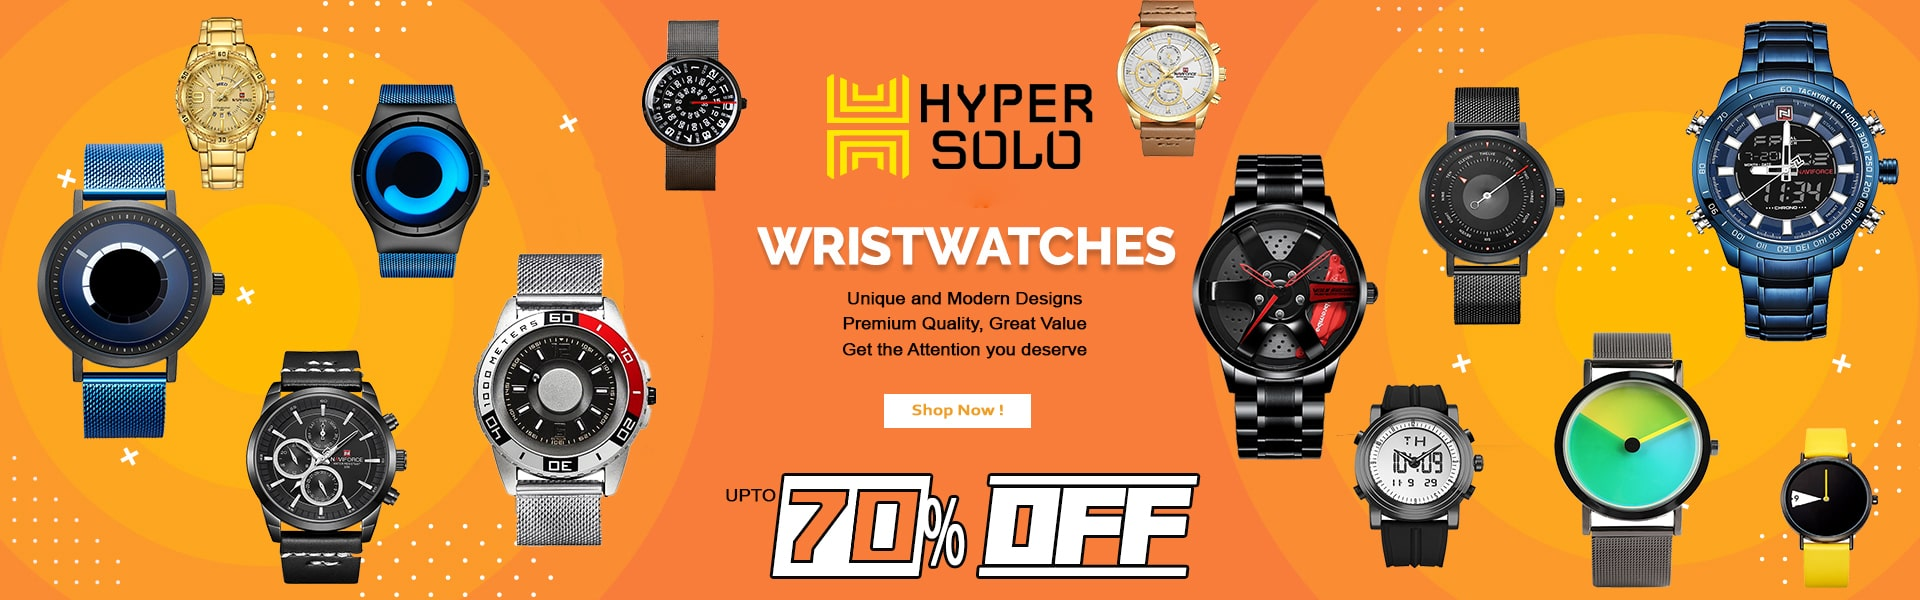 HyperSolo Wrist Watches Discount Banner